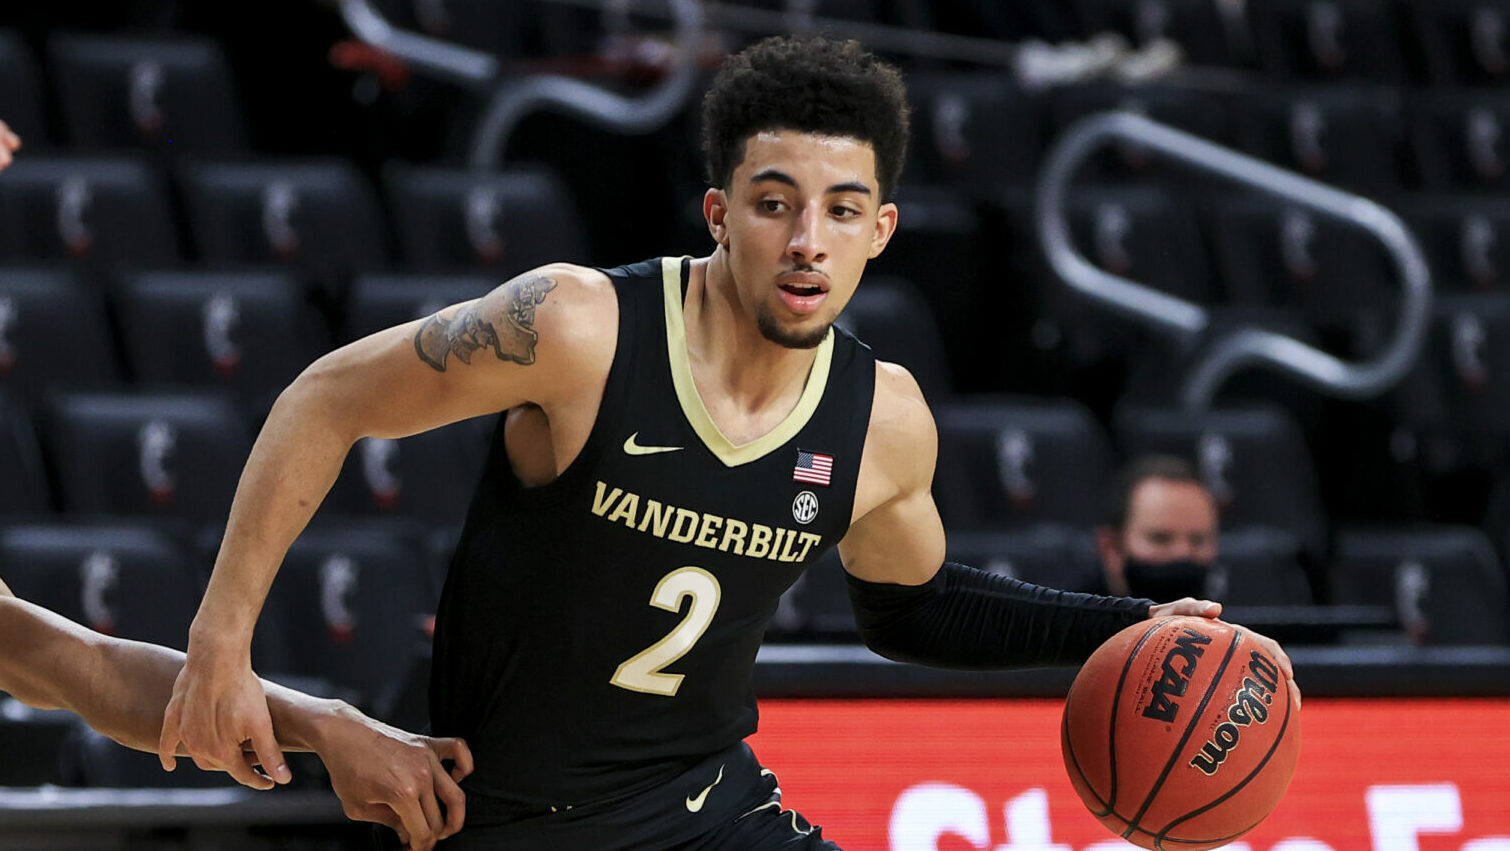 Vanderbilt's Scotty Pippen Jr. declares for Draft with no agent